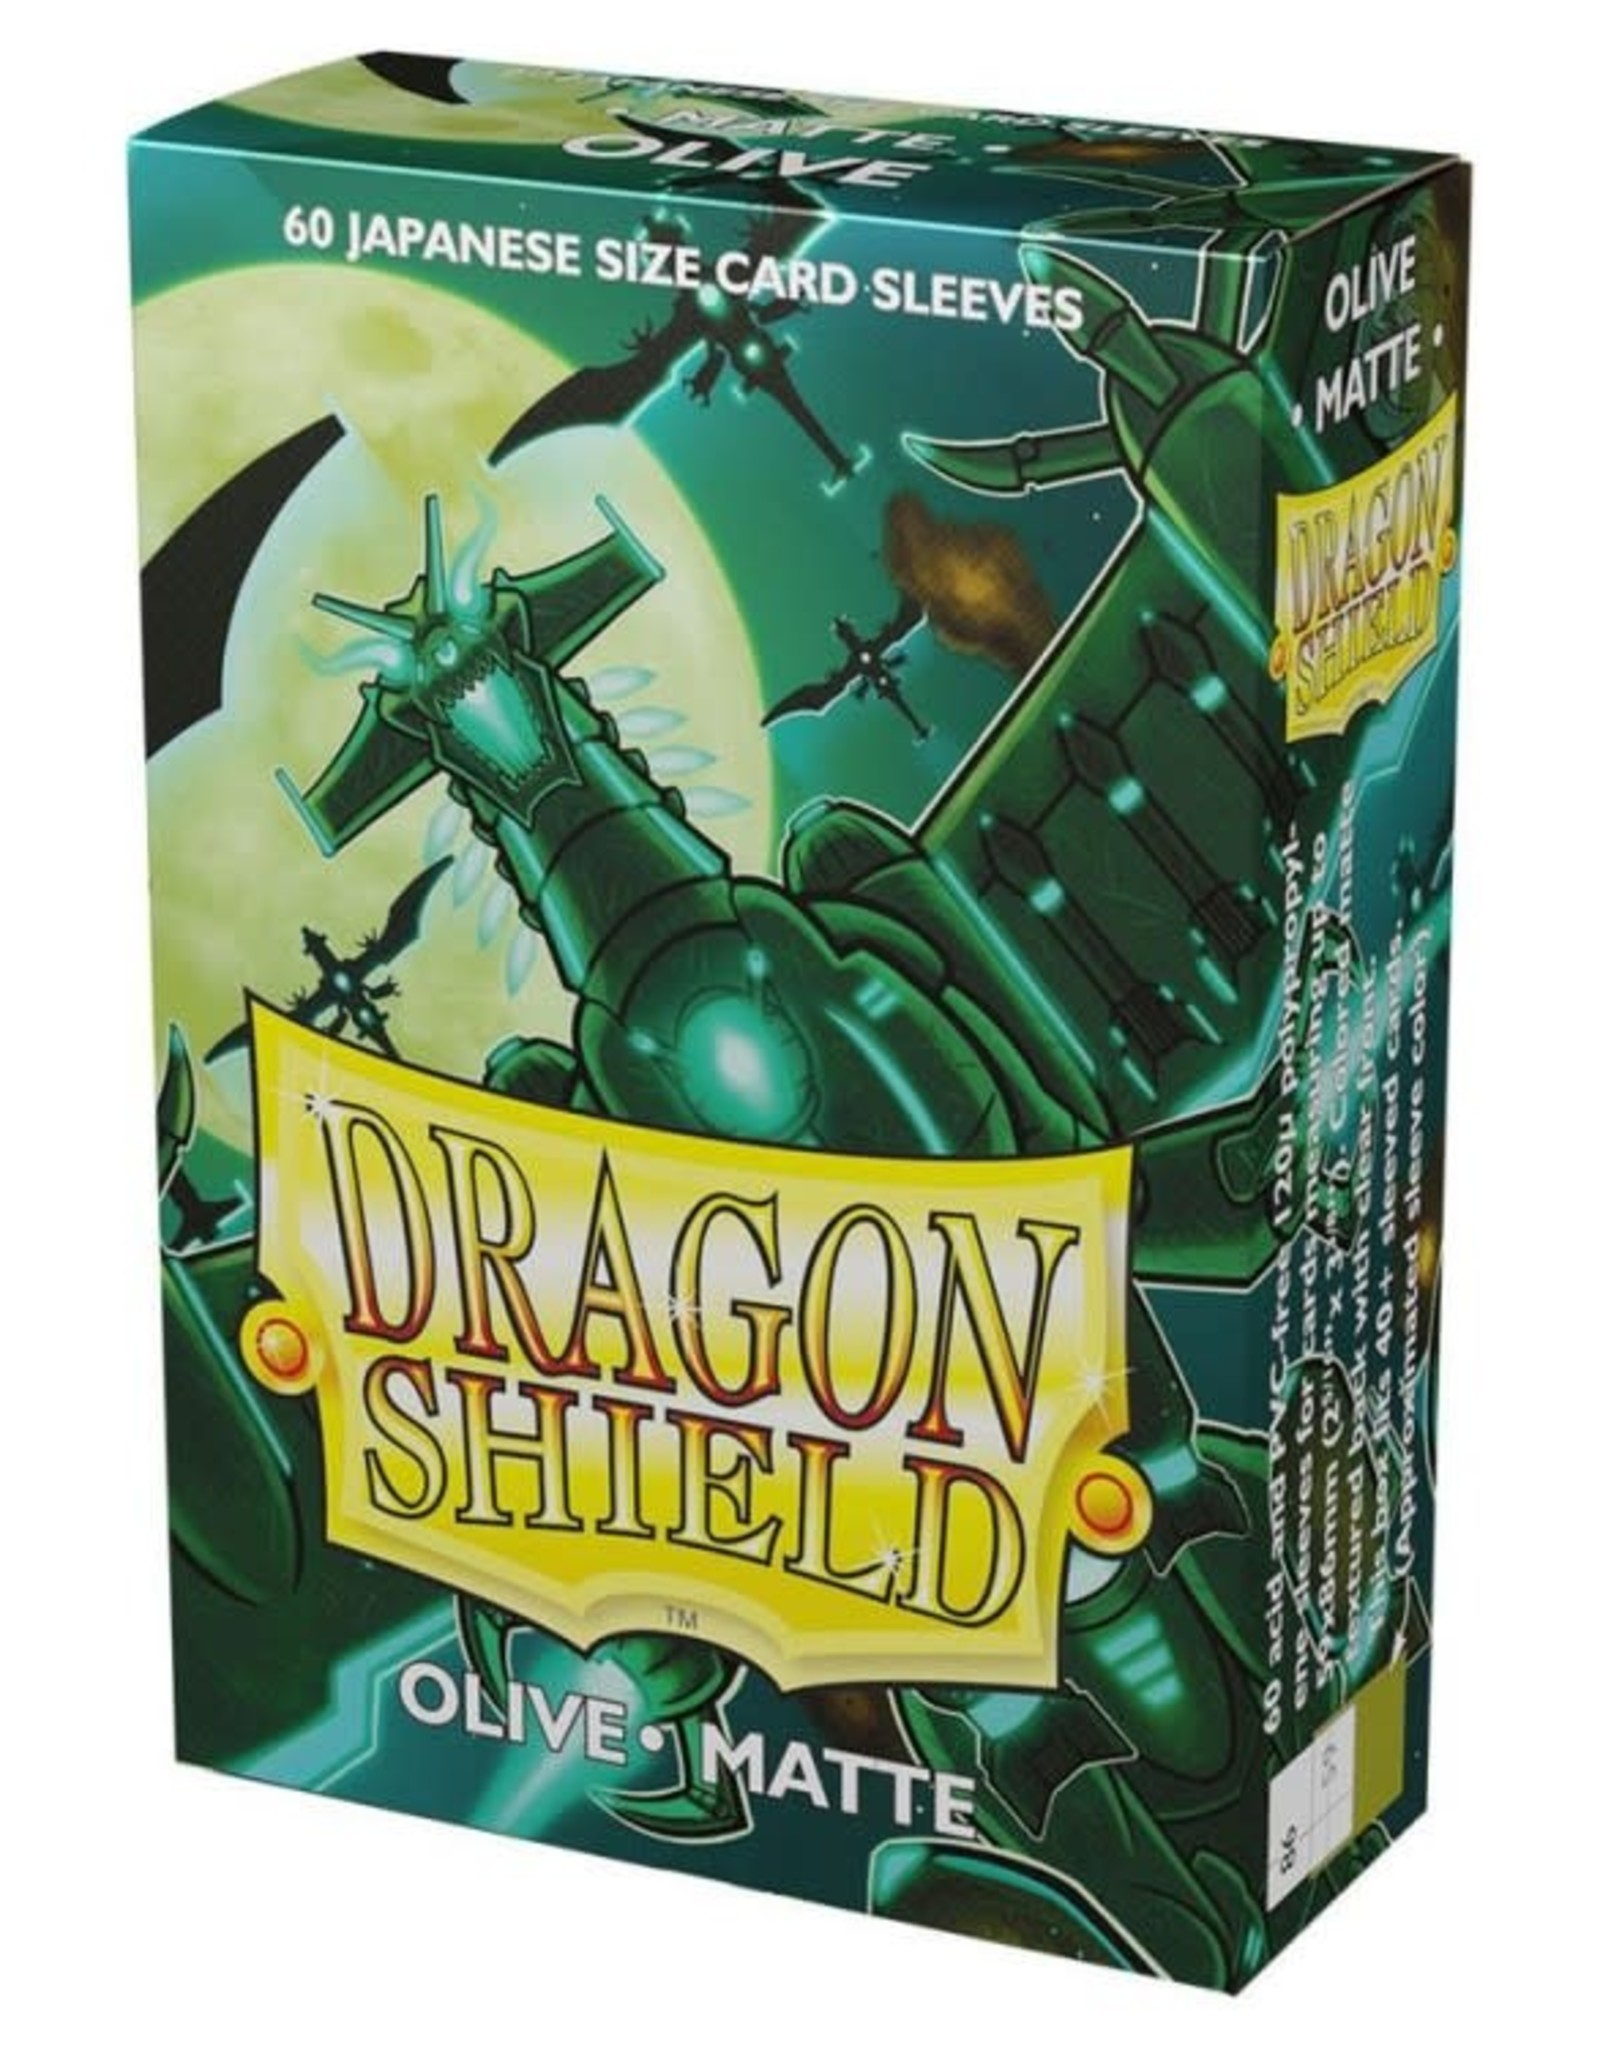 Arcane Tinmen Dragon Shield Japanese Matte Olive (60)